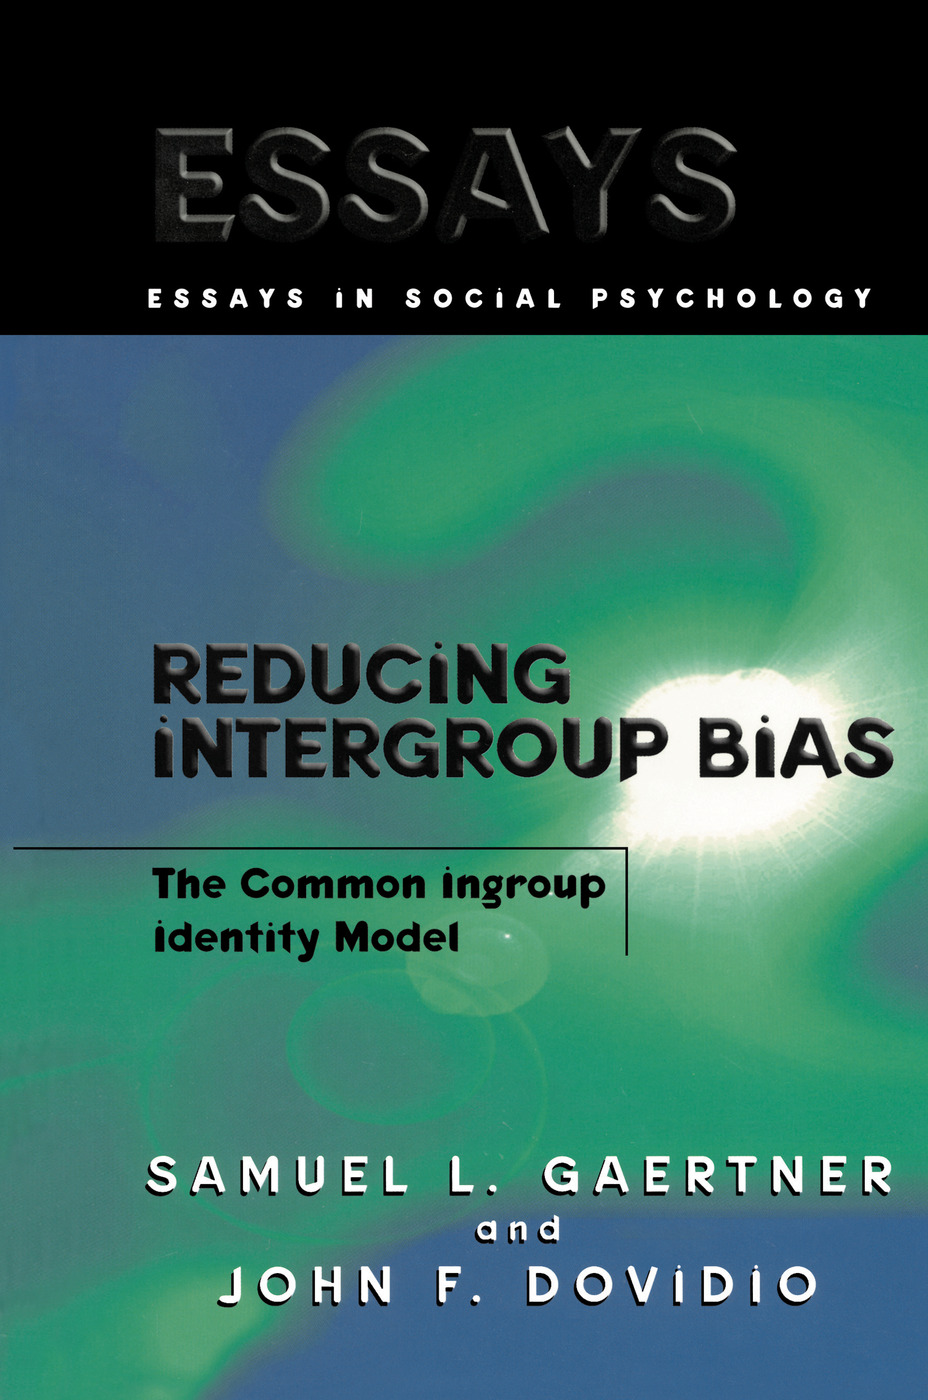 Reducing Intergroup Bias: The Common Ingroup Identity Model book cover